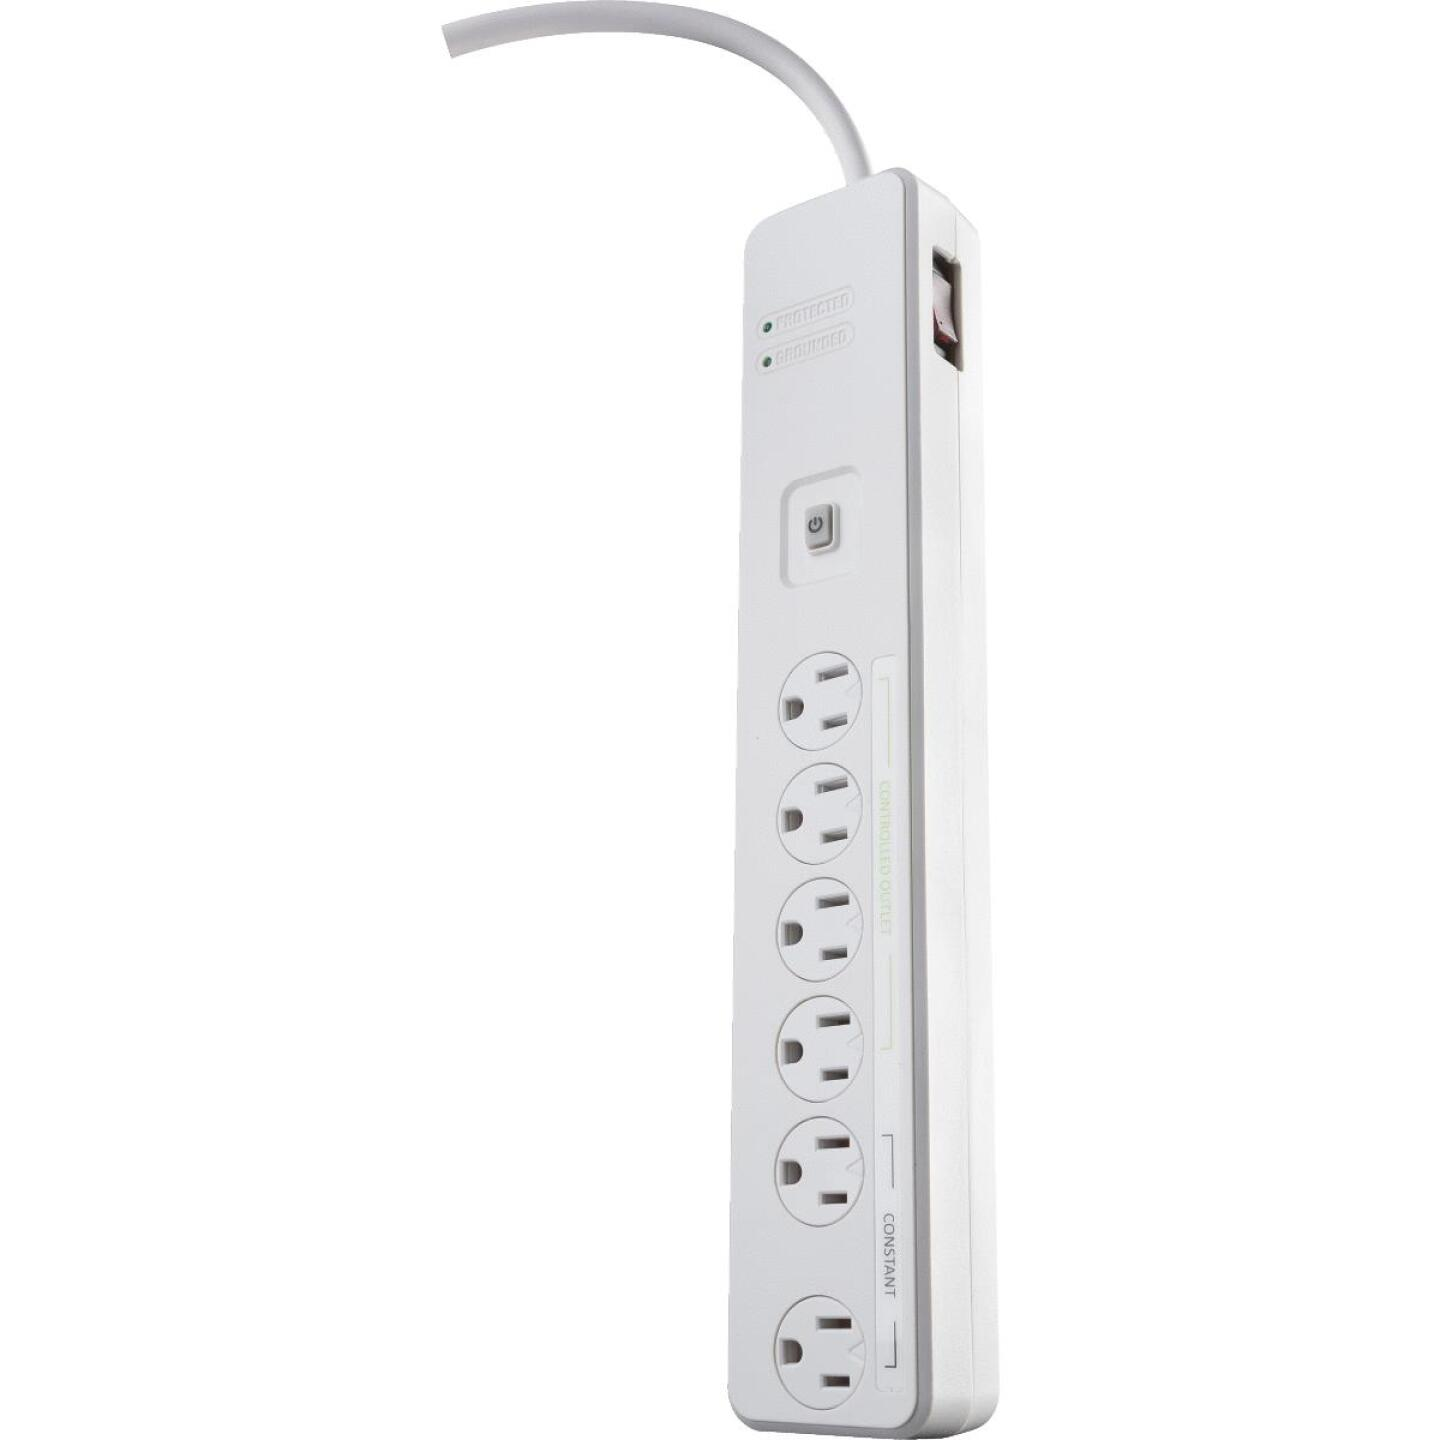 Woods 6-Outlet 1080J White Surge Protector Strip with Remote Control & 5 Ft. Cord Image 1